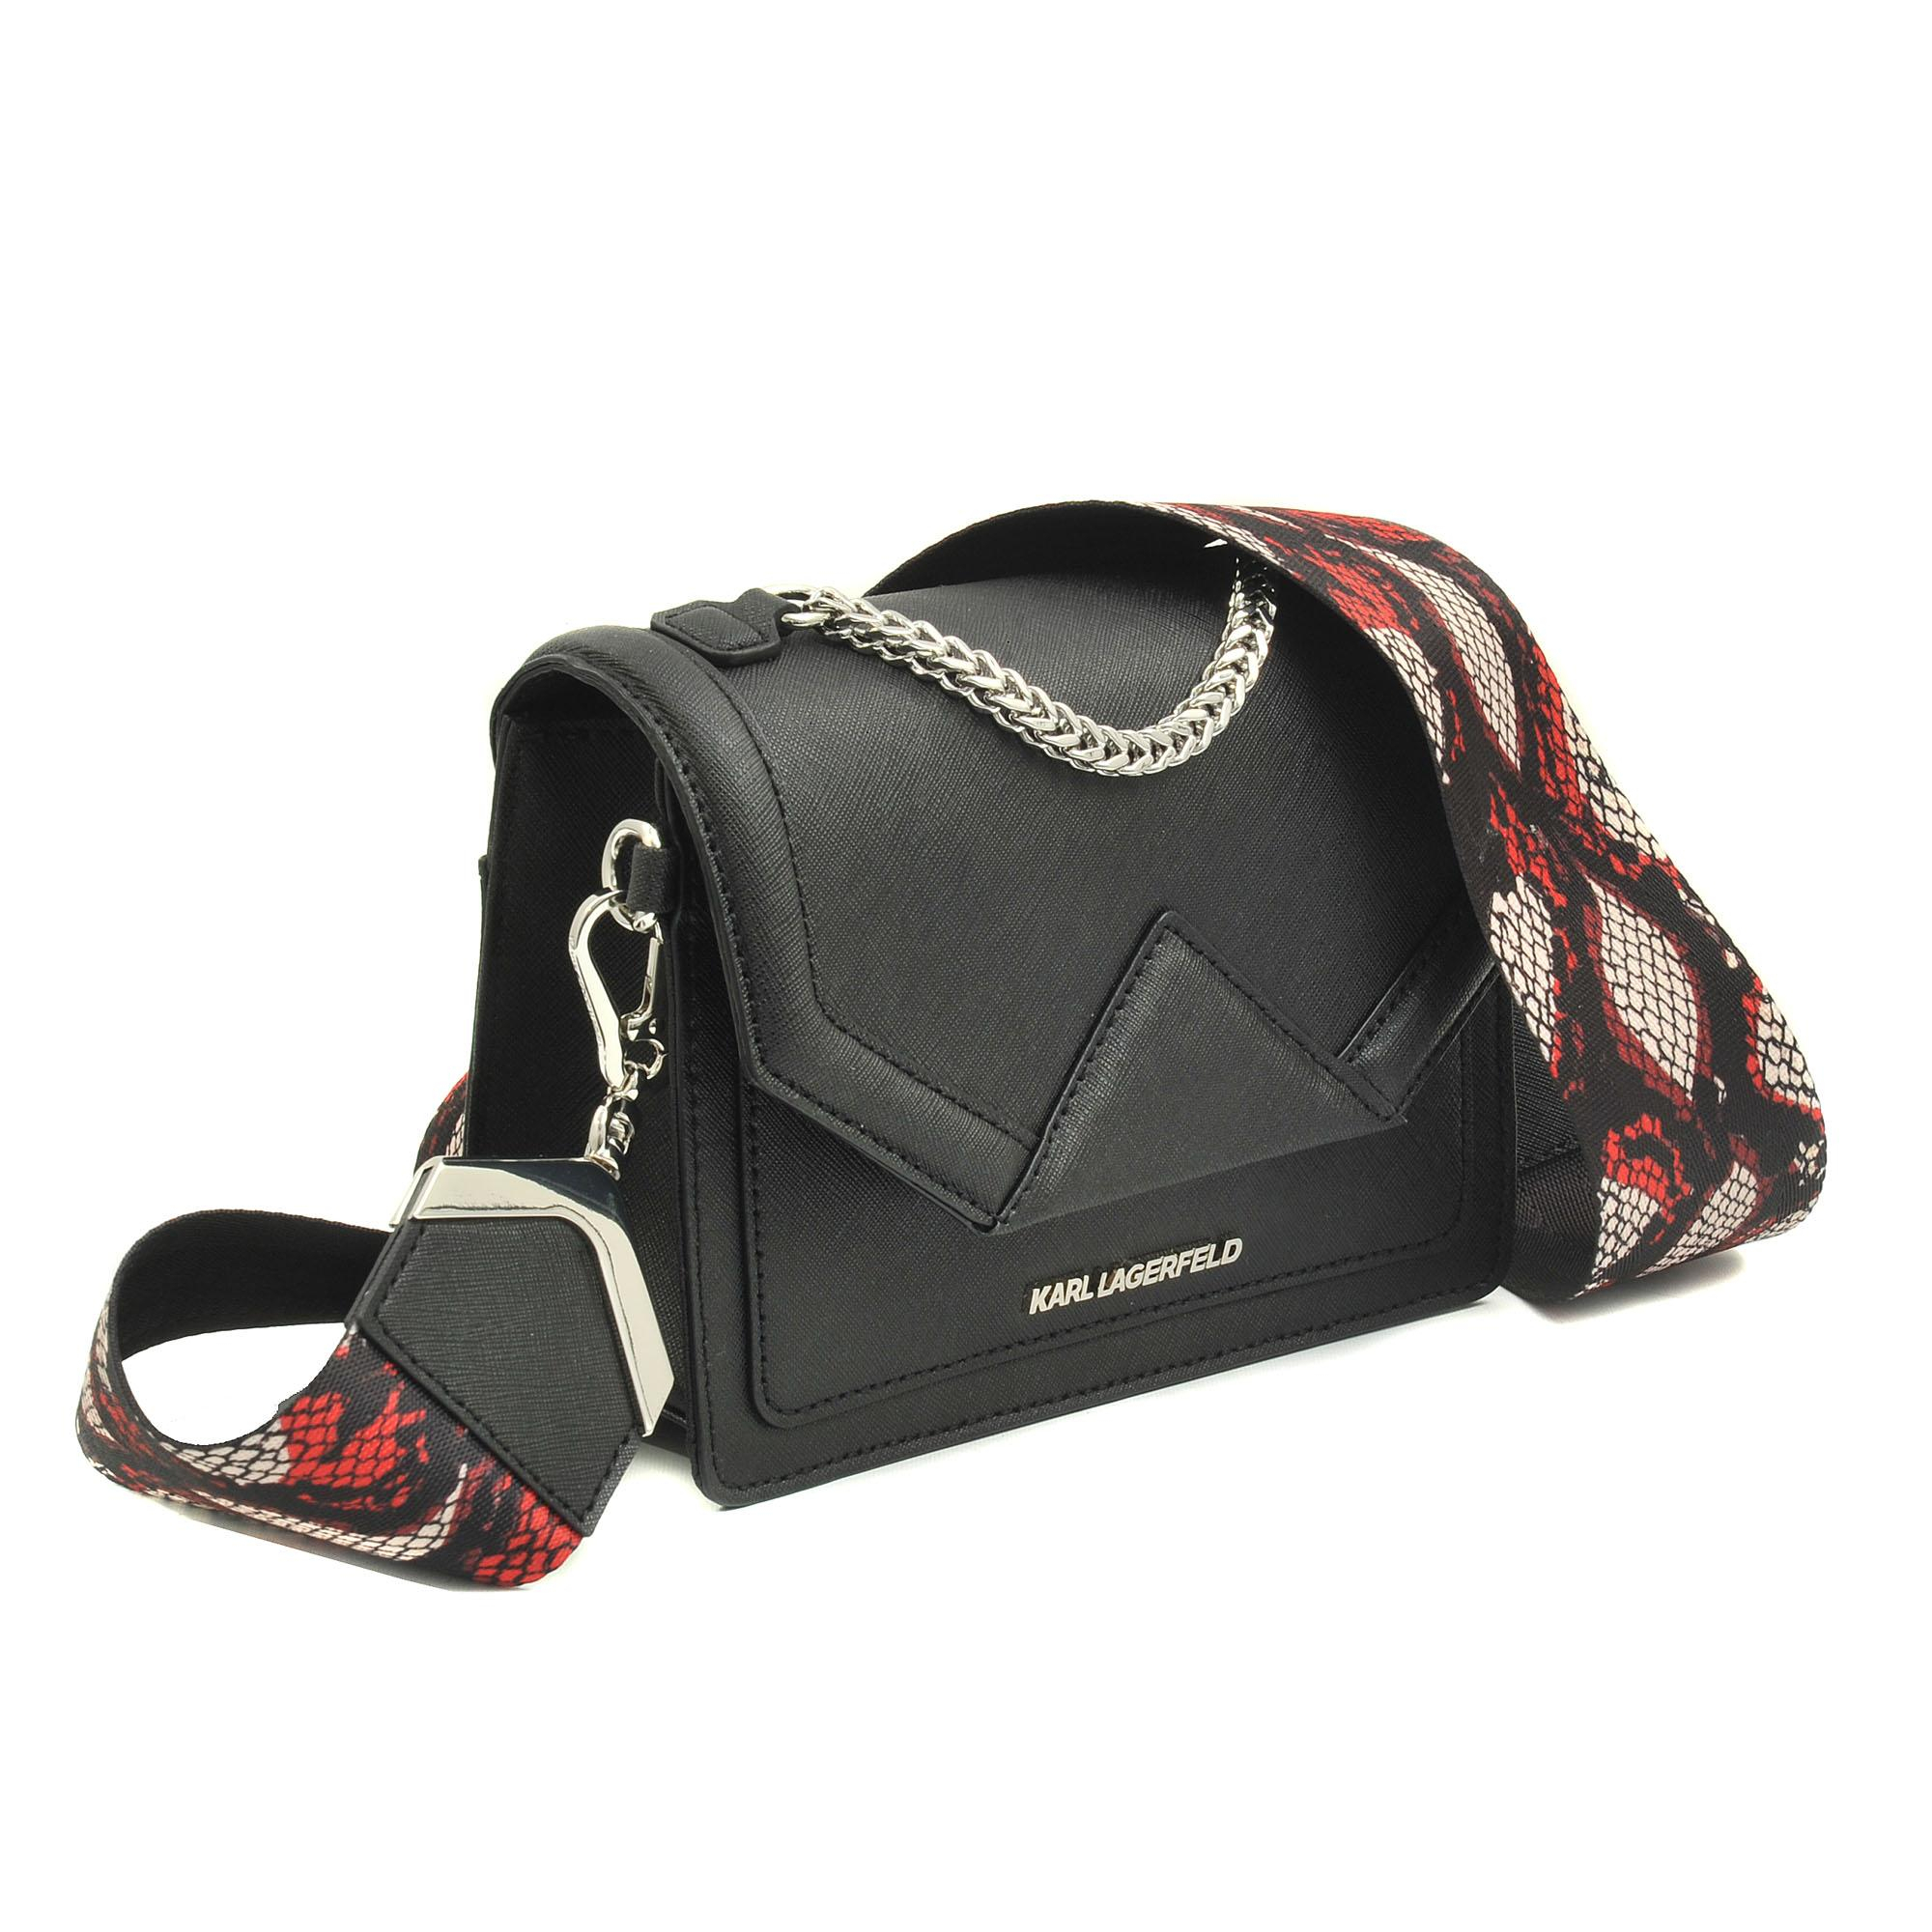 Rocky Saffiano shoulder bag - Rot Karl Lagerfeld